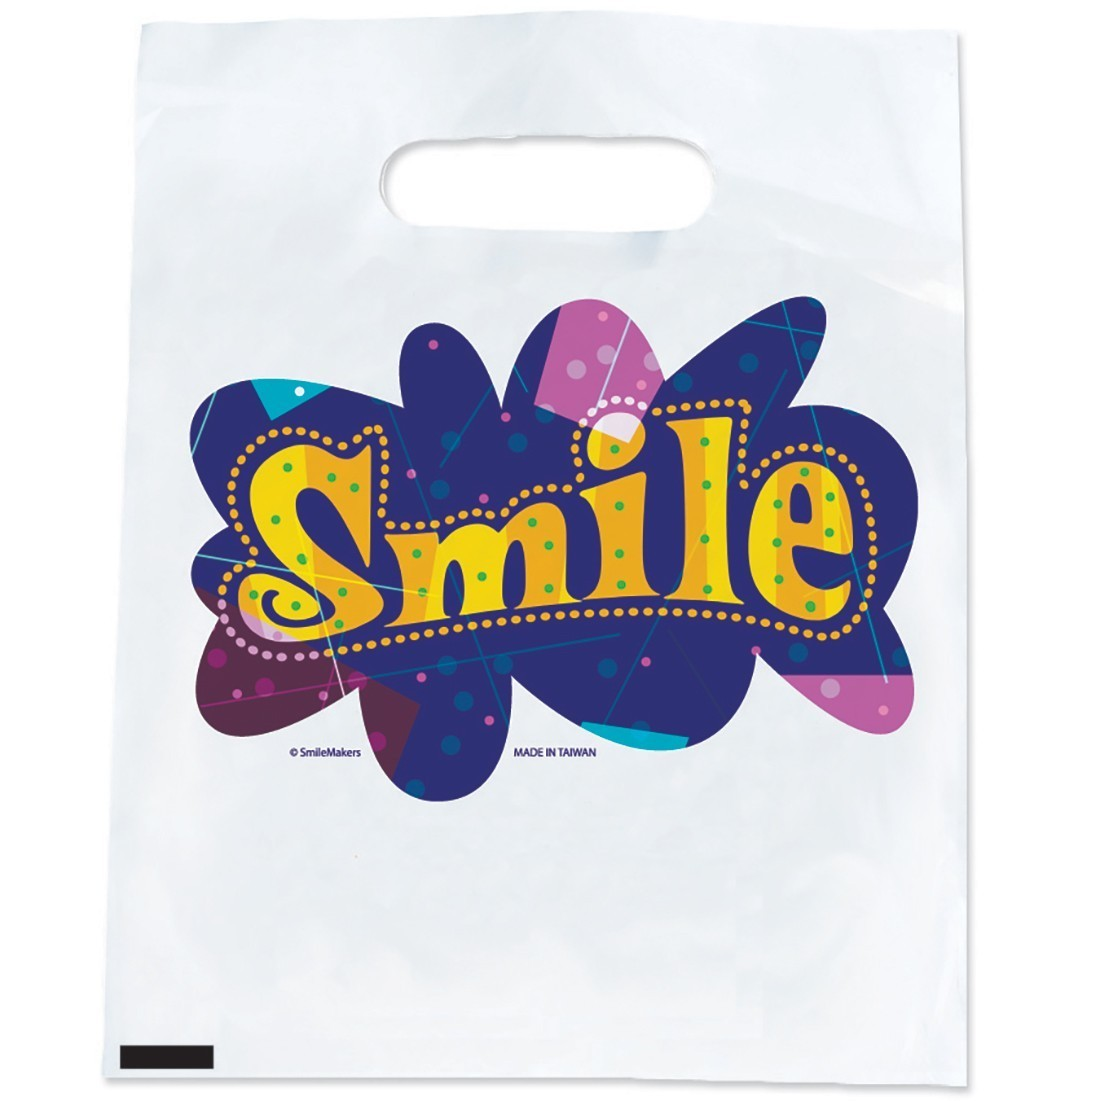 Colorful Smile Bags                                [image]